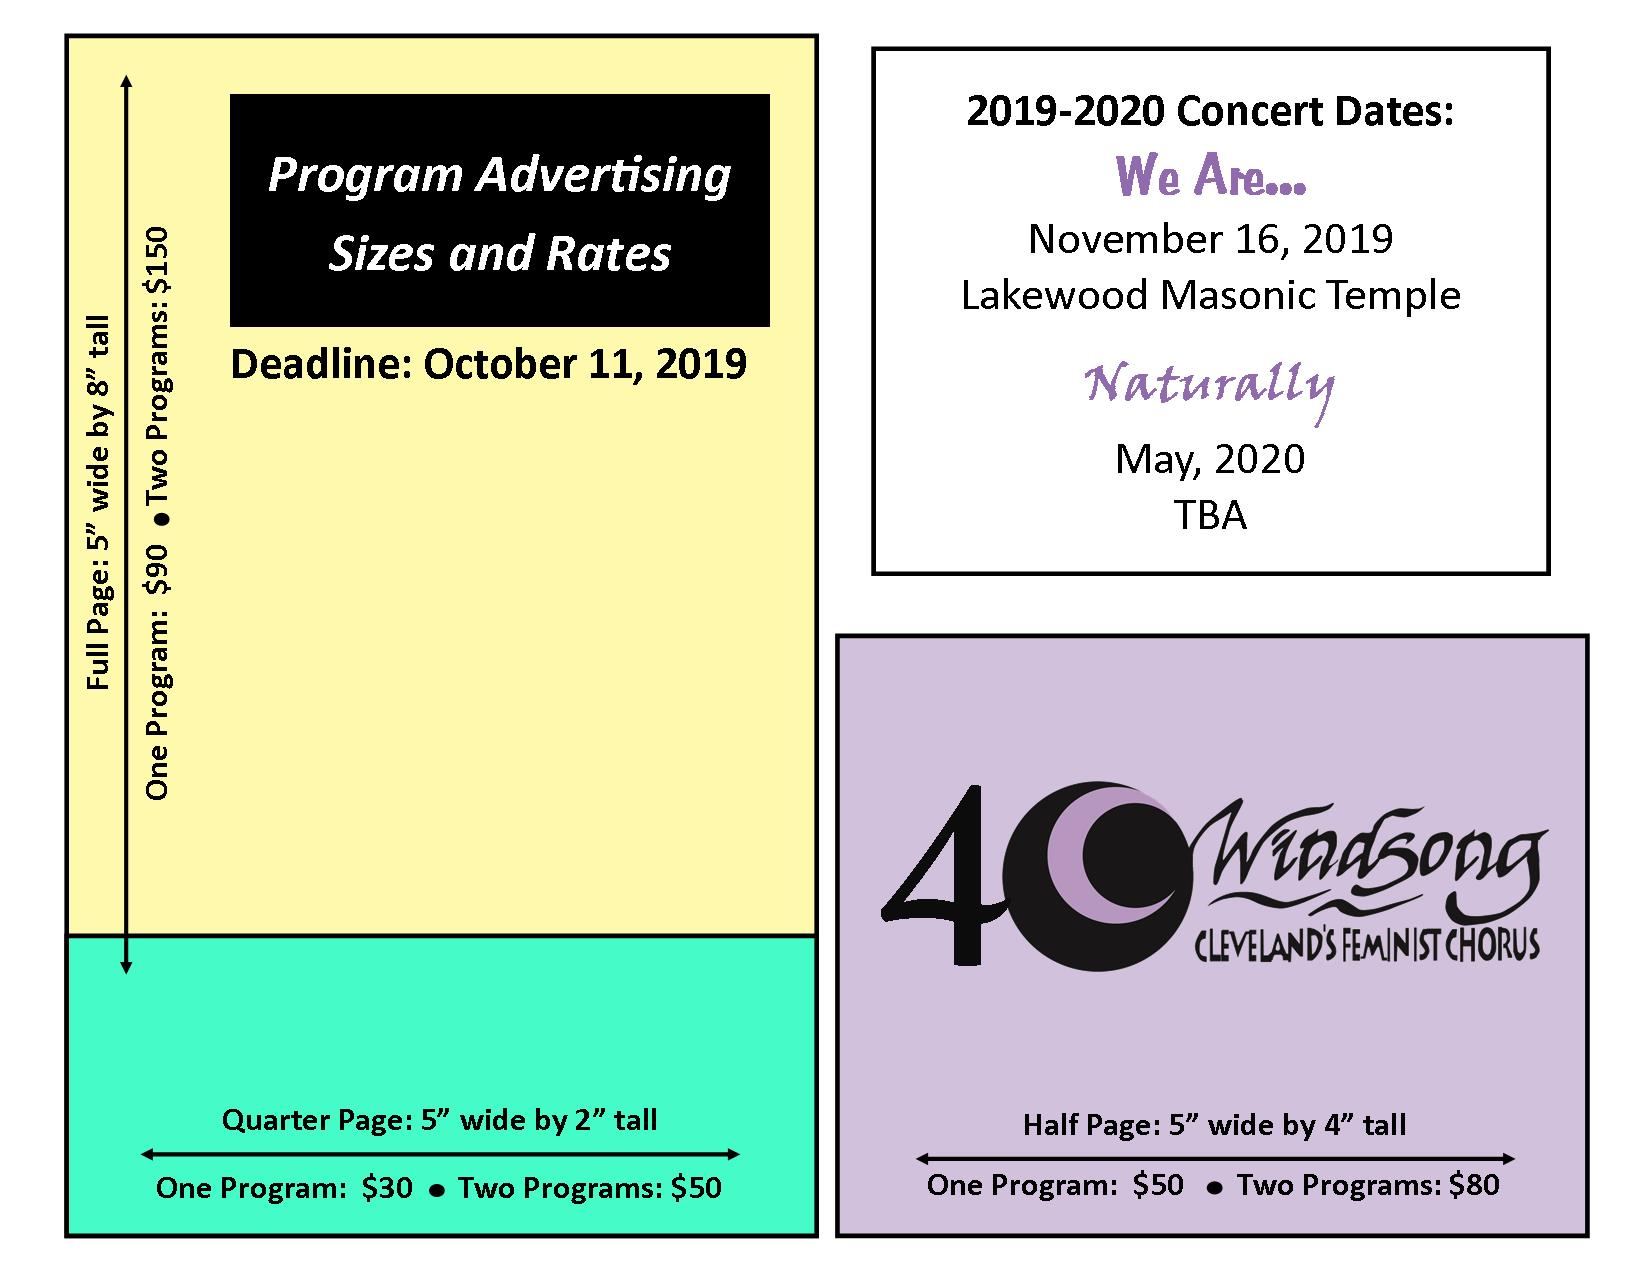 We would be honored to run your ad, message, or endorsement in our programs for this concert or the entire season, where it will be seen by about 300 audience members at each performance. We accept PayPal at  windsongpaypal@gmail.com  or you can mail a check or money order to our P.O. Box at 771212 Lakewood Oh 44107. Payments must be received by October 16, 2019 for your ad to appear in our program.  Please email your ad to Amanda Strand by October 11 at  mandyrae16@gmail.com . If you have questions or need help, please contact Amanda via email (preferred) or call 216-644-8023. Formats that we will accept are: .PDF, .TIF (300DPI or more, CMYK, not RGB), .EPS, or .JPG (300 DPI or more CMYK not RGB) if you scan a business card to email, make a High-Res scan, 600DPI or better so it can be enlarged. Submissions are due no later October 11, 2019.